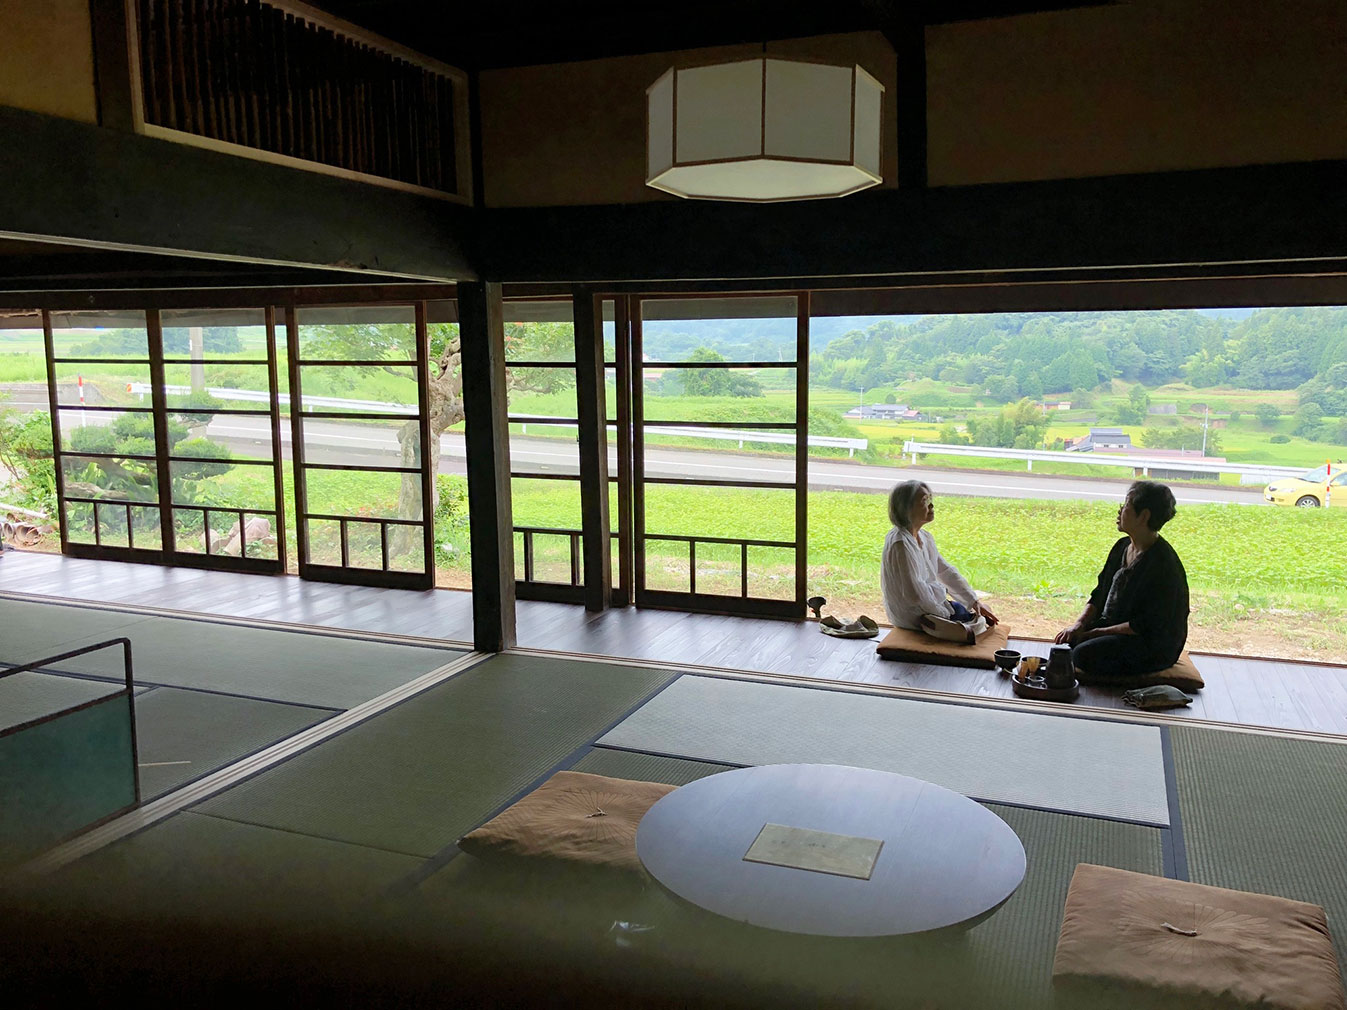 Chojaya is a 250-year-old thatched farmhouse with a traditional timber frame whose screen doors pull back to reveal lush views of the Hibayama mountains